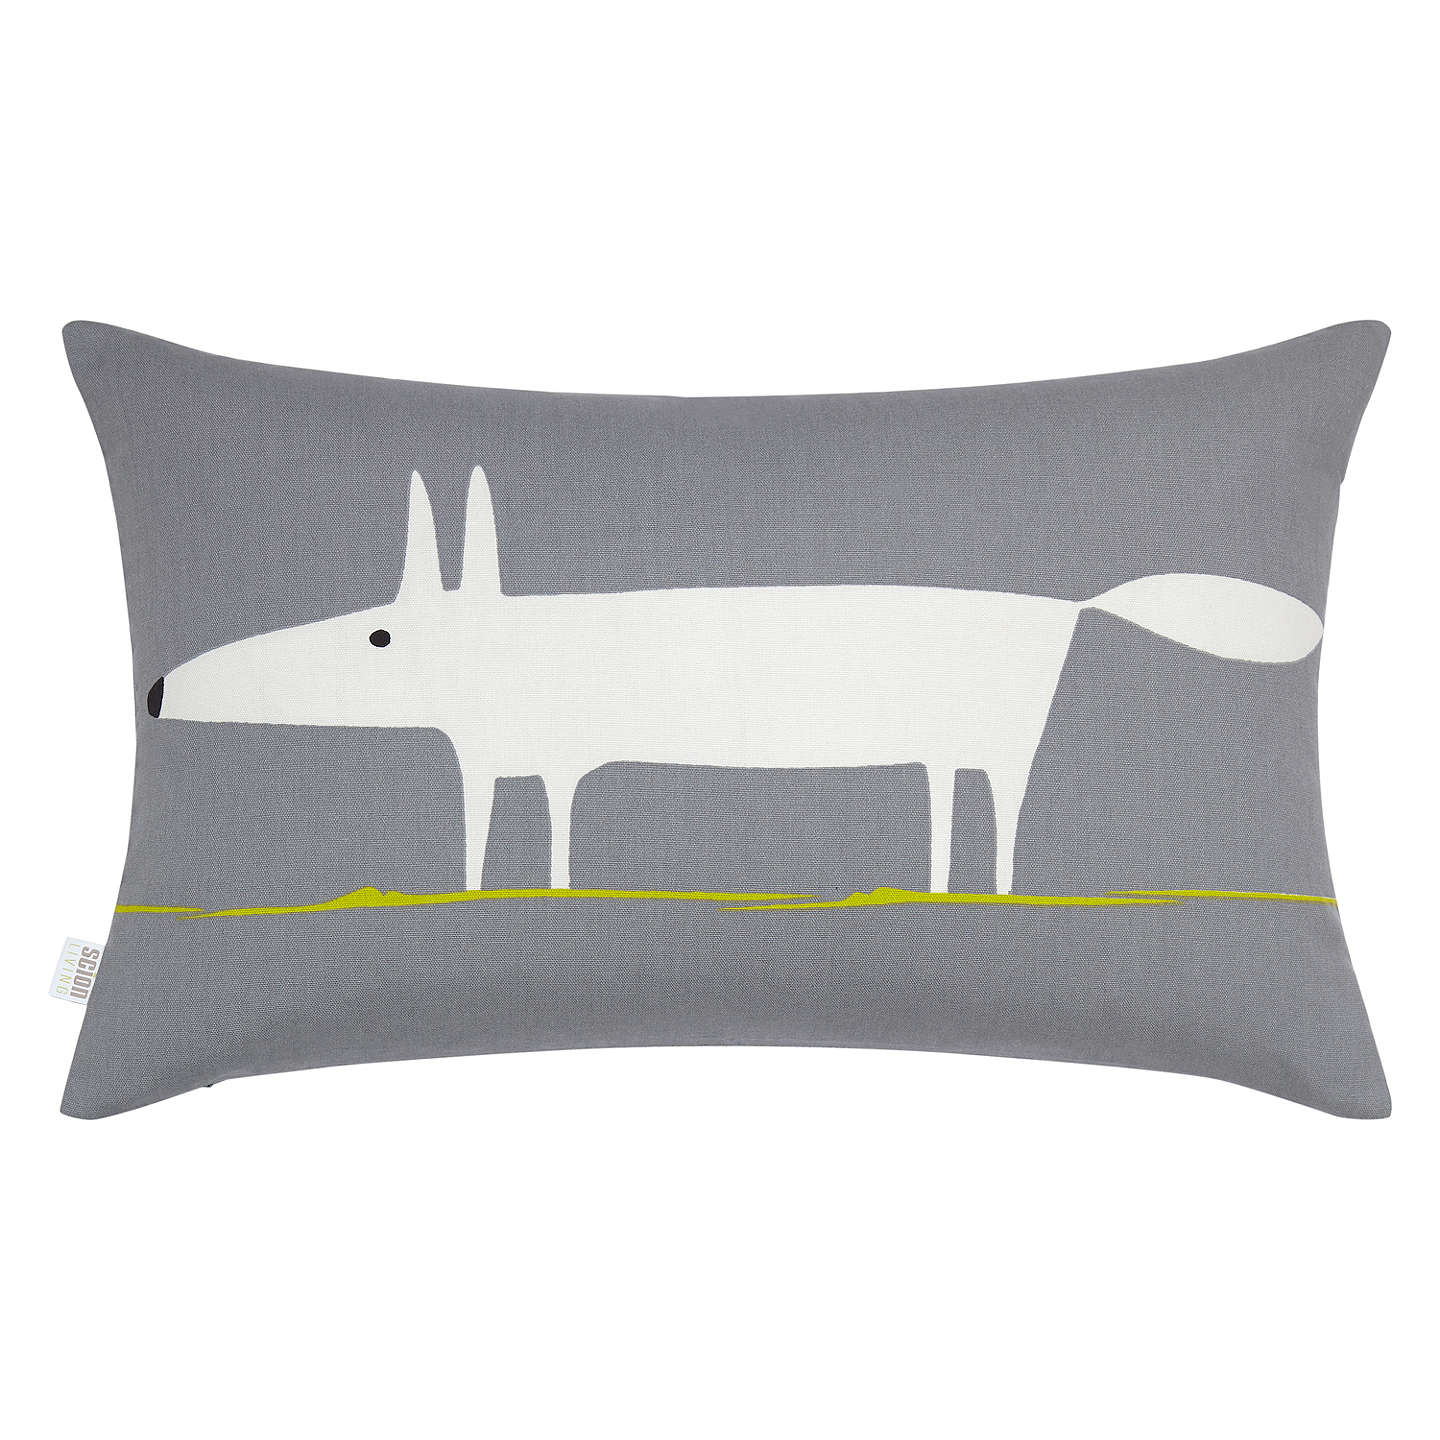 BuyScion Mr Fox Cushion, Steel Online at johnlewis.com